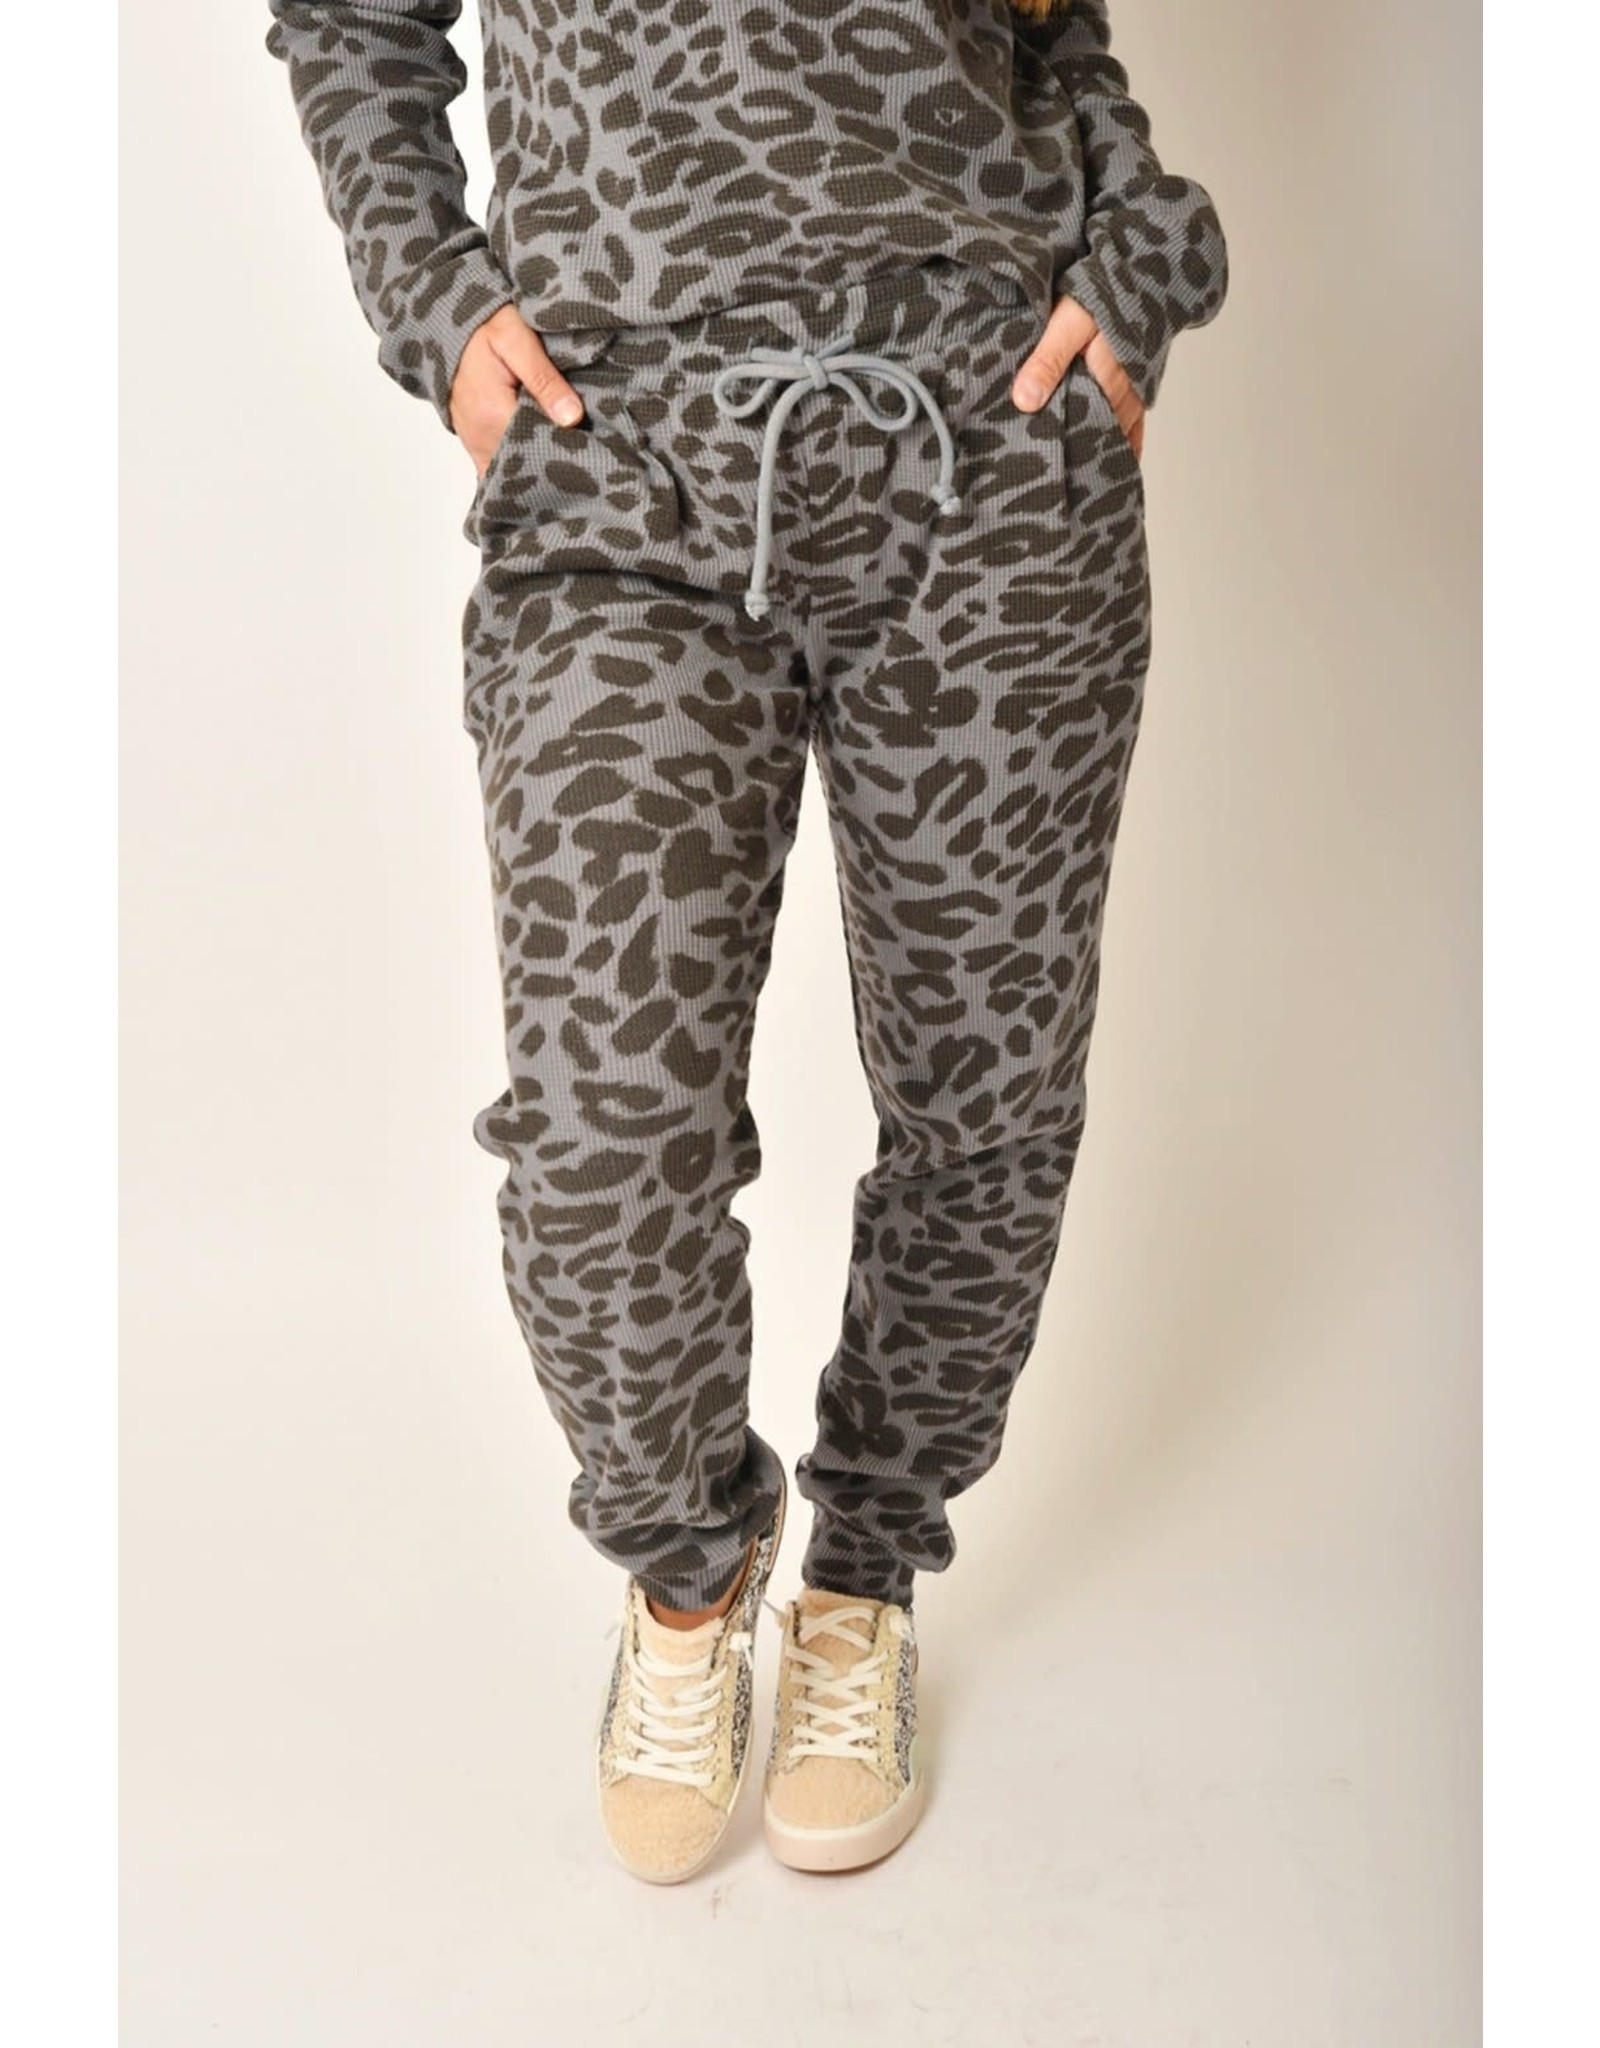 RD Style RD Style - Knit joggers (grey leopard)